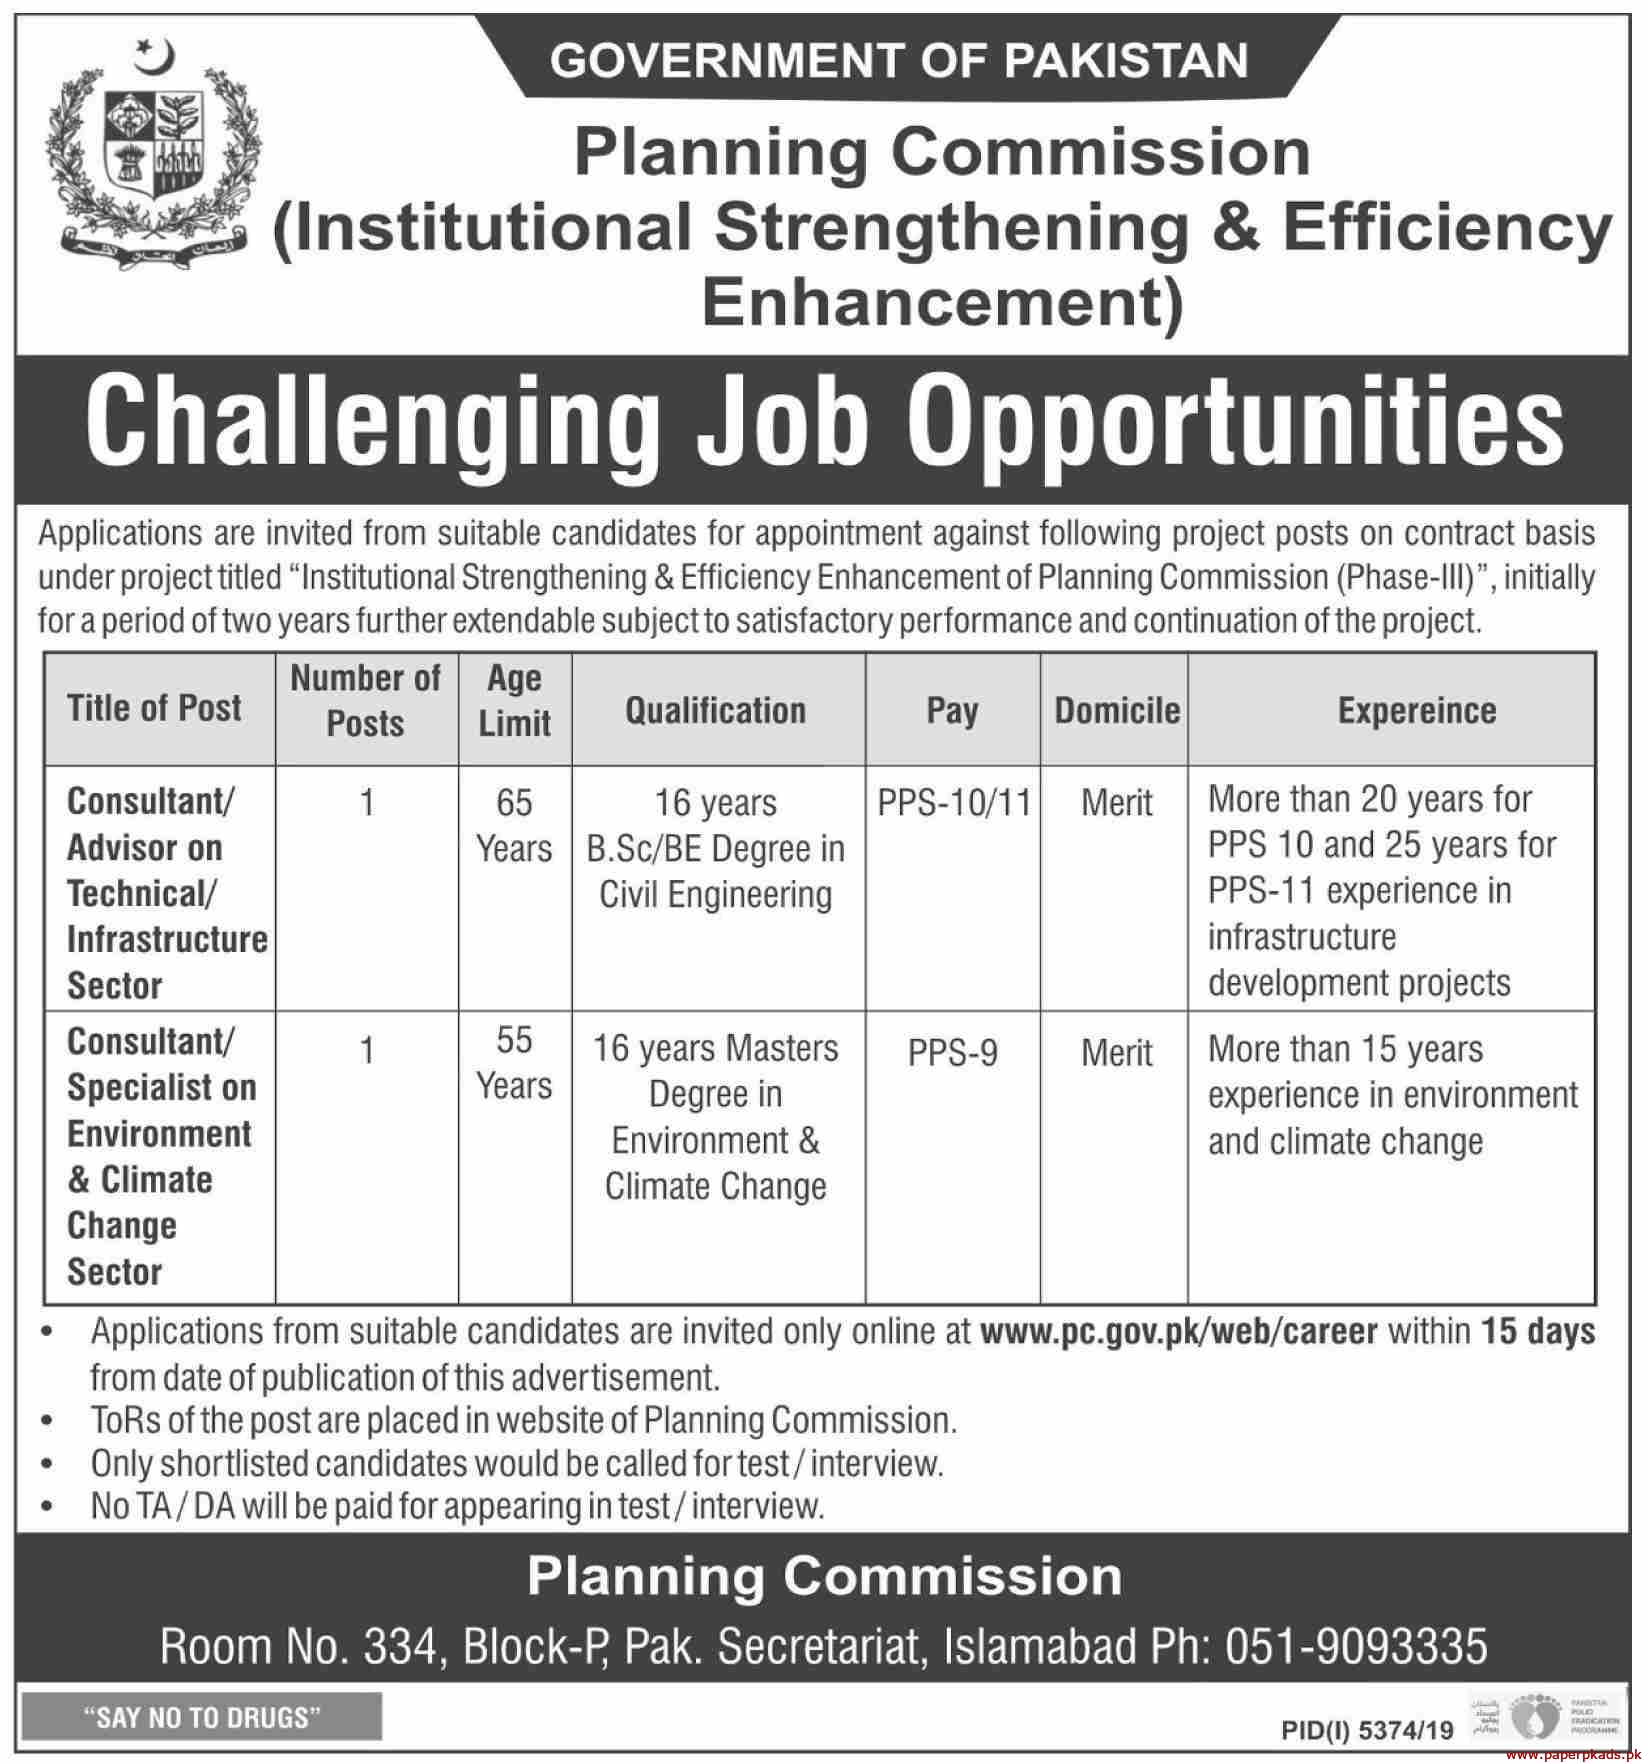 Planning Commission Government of Pakistan Jobs 2020 Latest